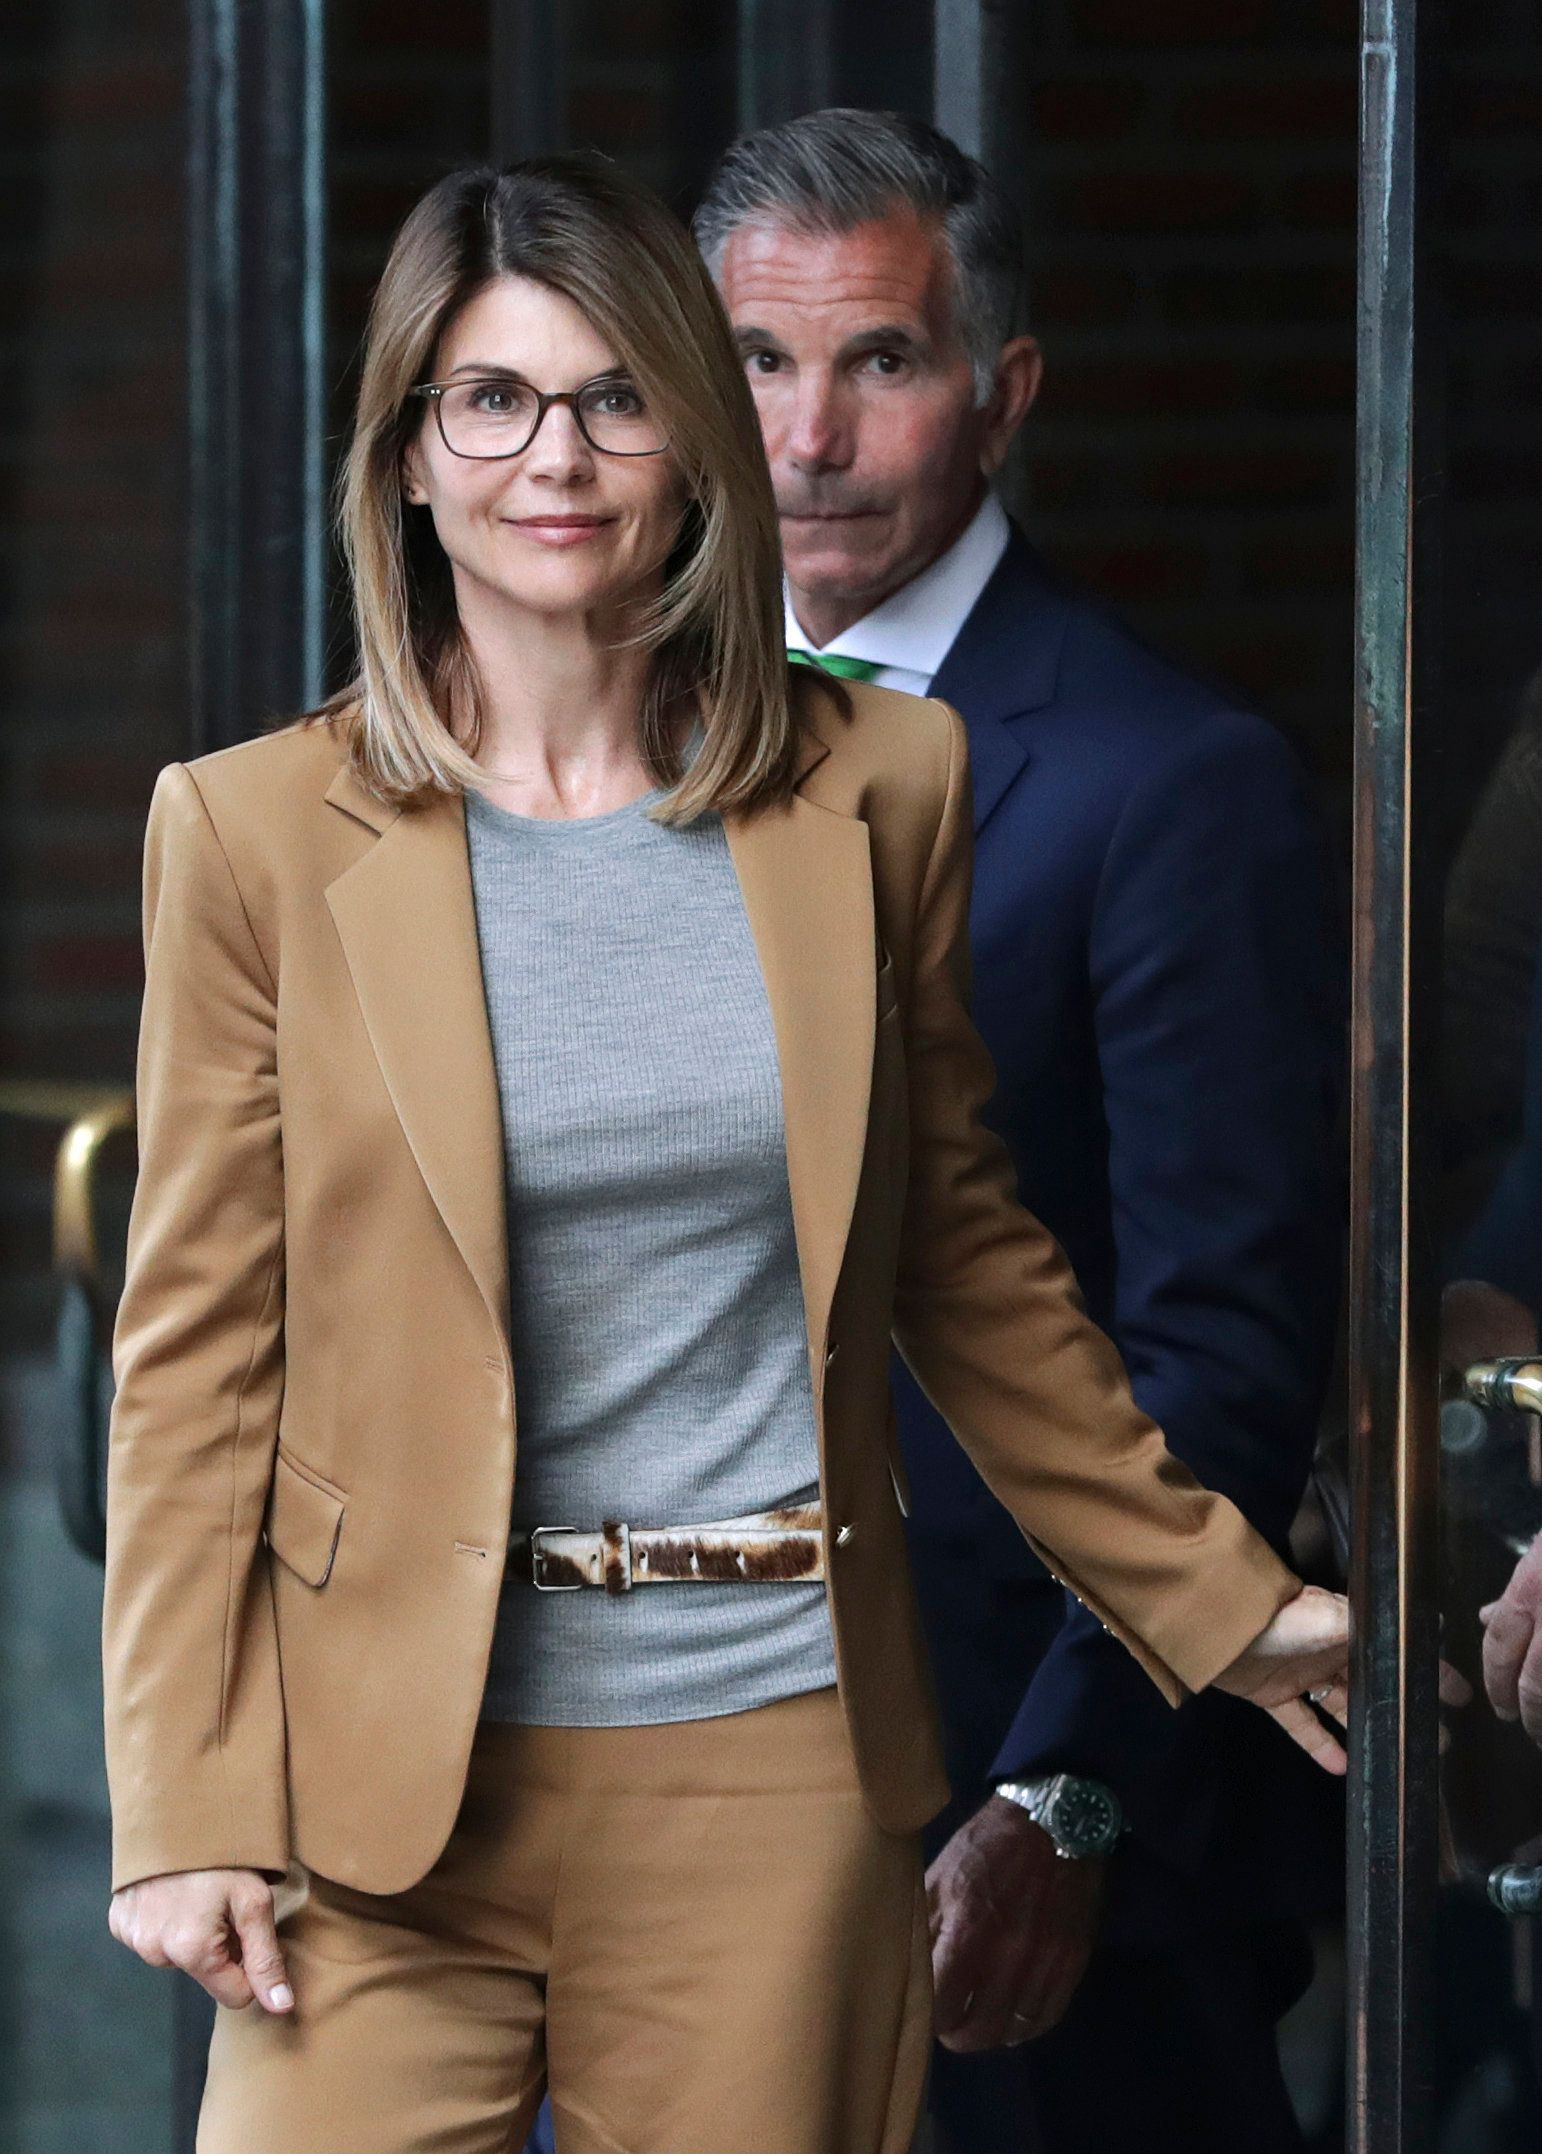 Actress Lori Loughlin, front, and husband, clothing designer Mossimo Giannulli, rear, depart federal court in Boston on Wednesday, April 3, 2019, after facing charges in a nationwide college admissions bribery scandal. (AP Photo/Charles Krupa)